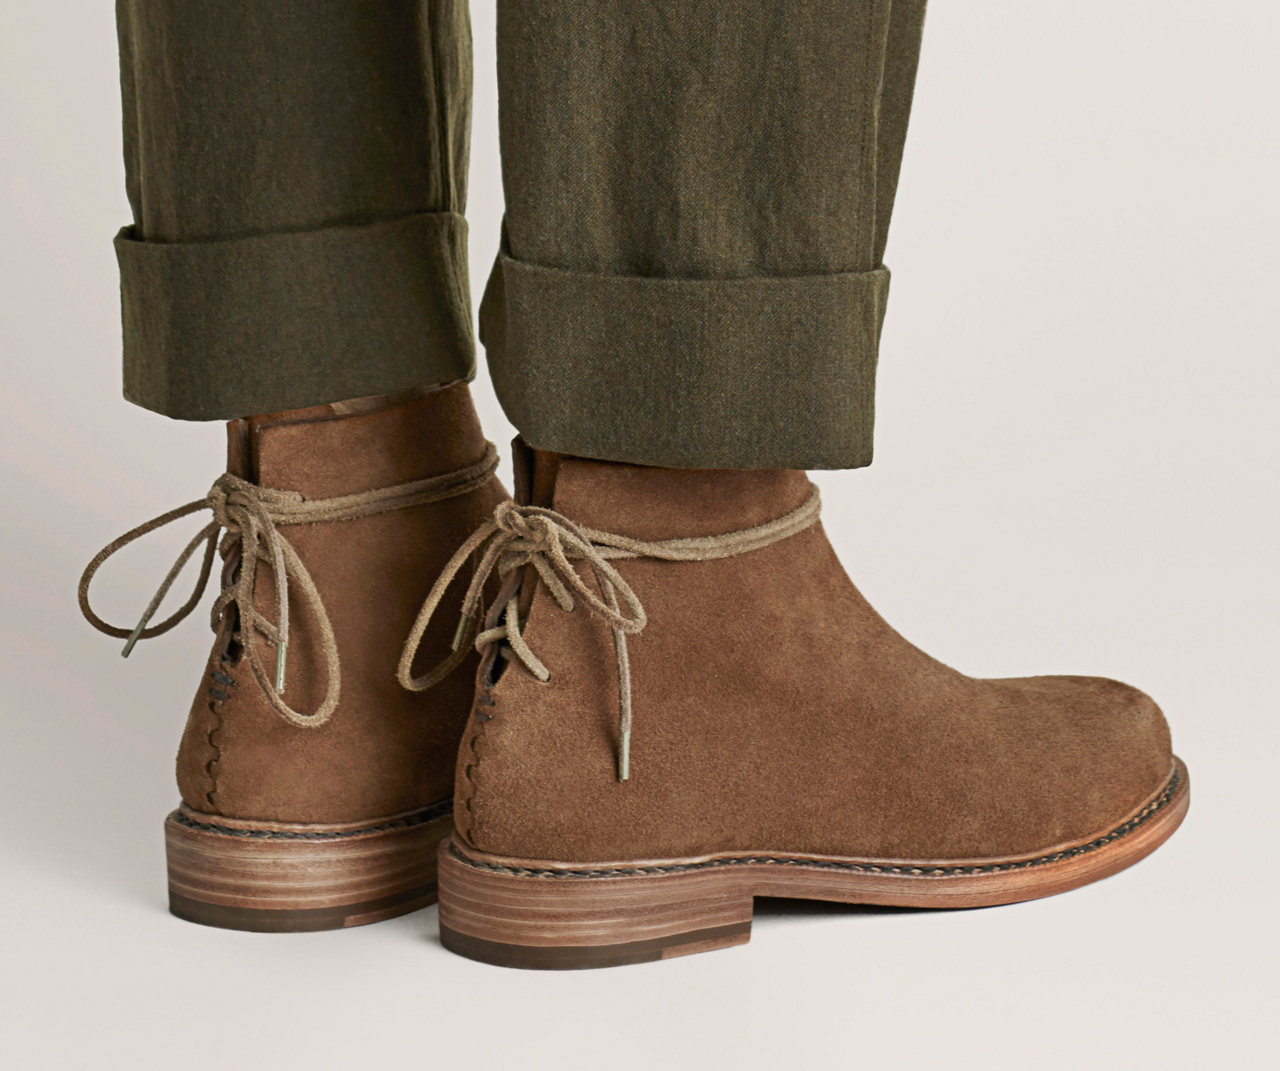 FEIT Introduces Balance SS17 Men's Collection